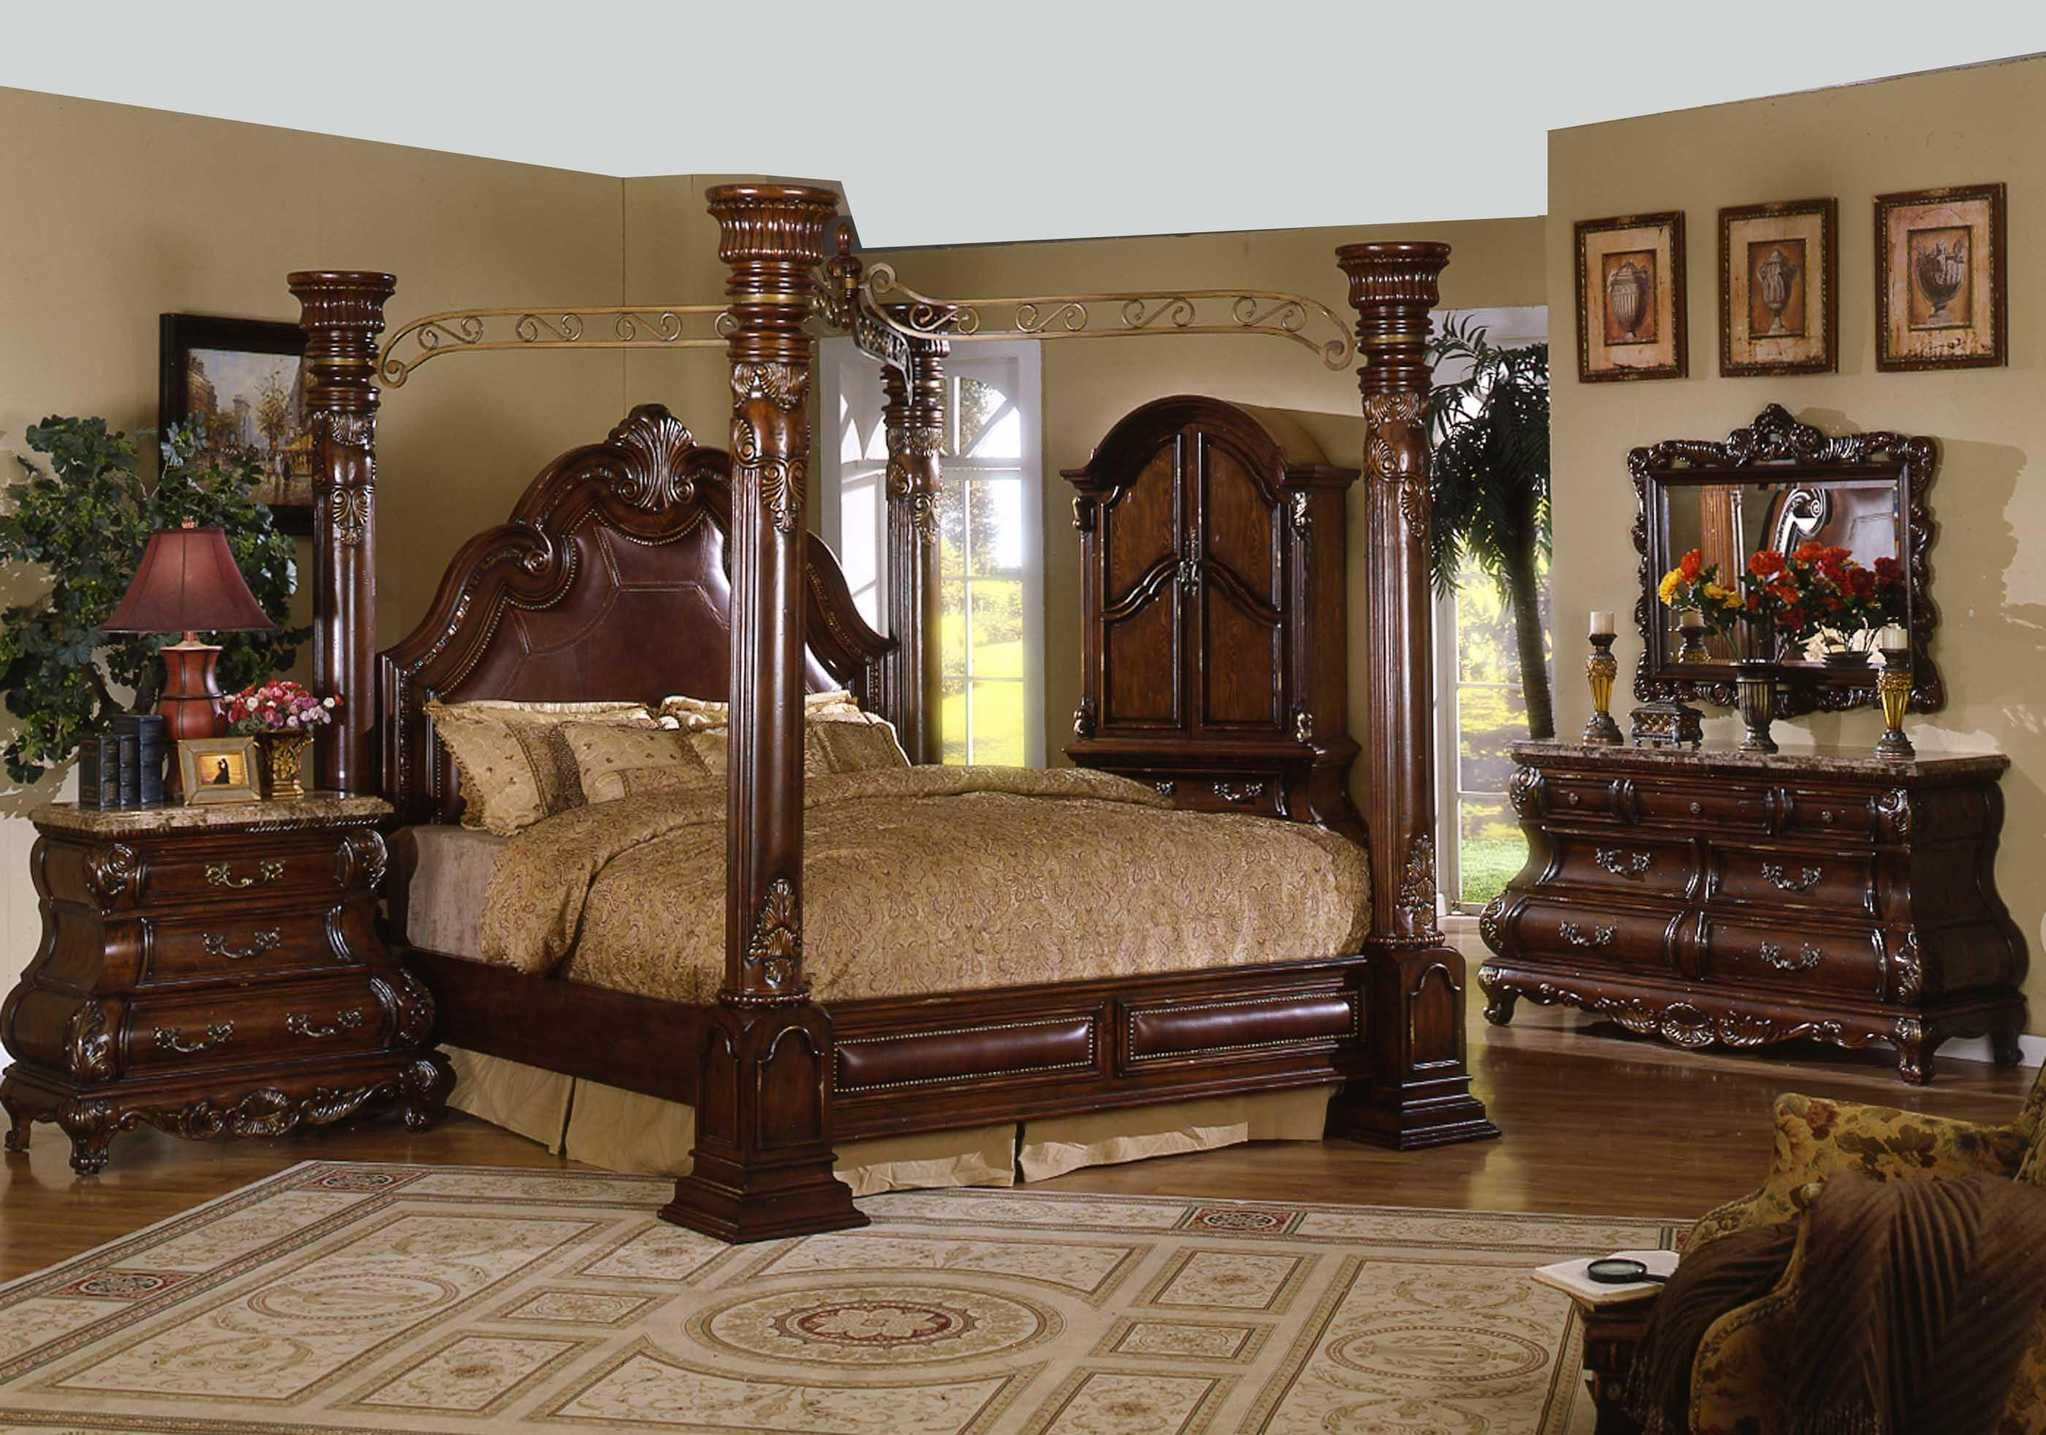 Canopy Bed | Canopy Bedroom Sets | Four Post Canopy Bed 4734 & Canopy Bed | Canopy Bedroom Sets | Four Post Canopy Bed 4734 ...